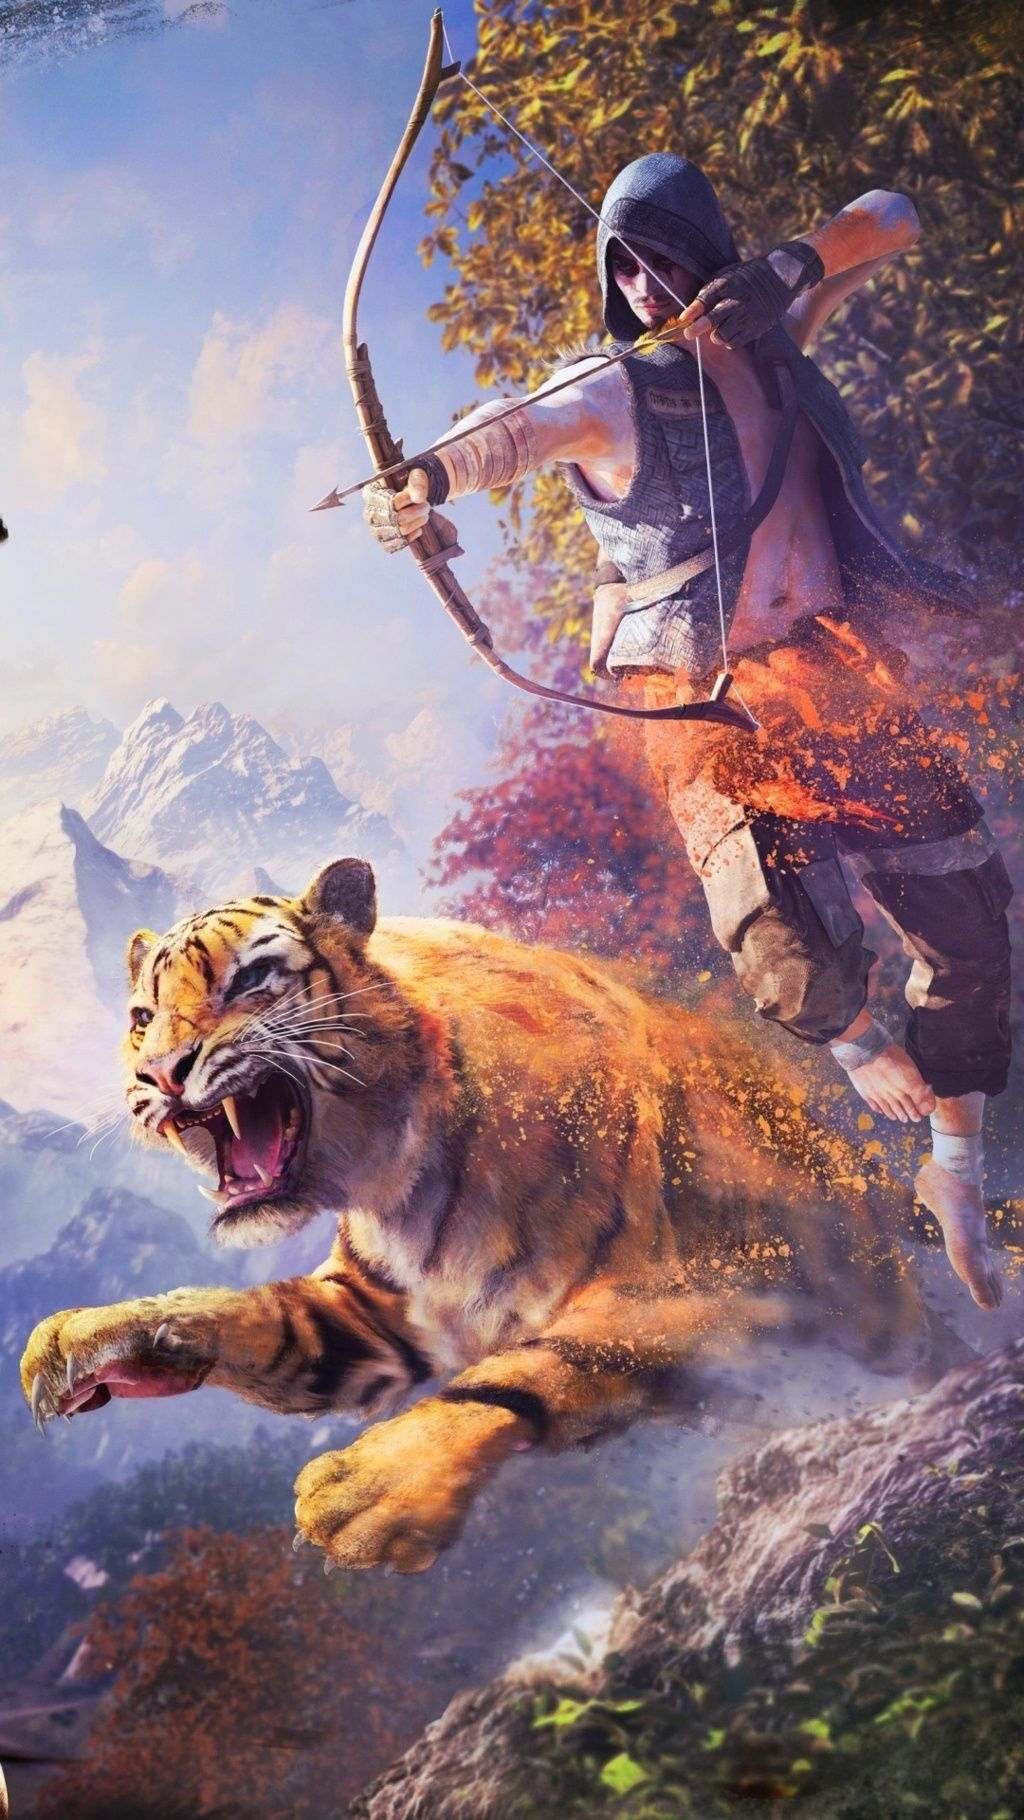 Far Cry 4 3 Oooo Dis Cool I Really Love This Game Right Now Though I Get So Distracted With Side Missions Xd